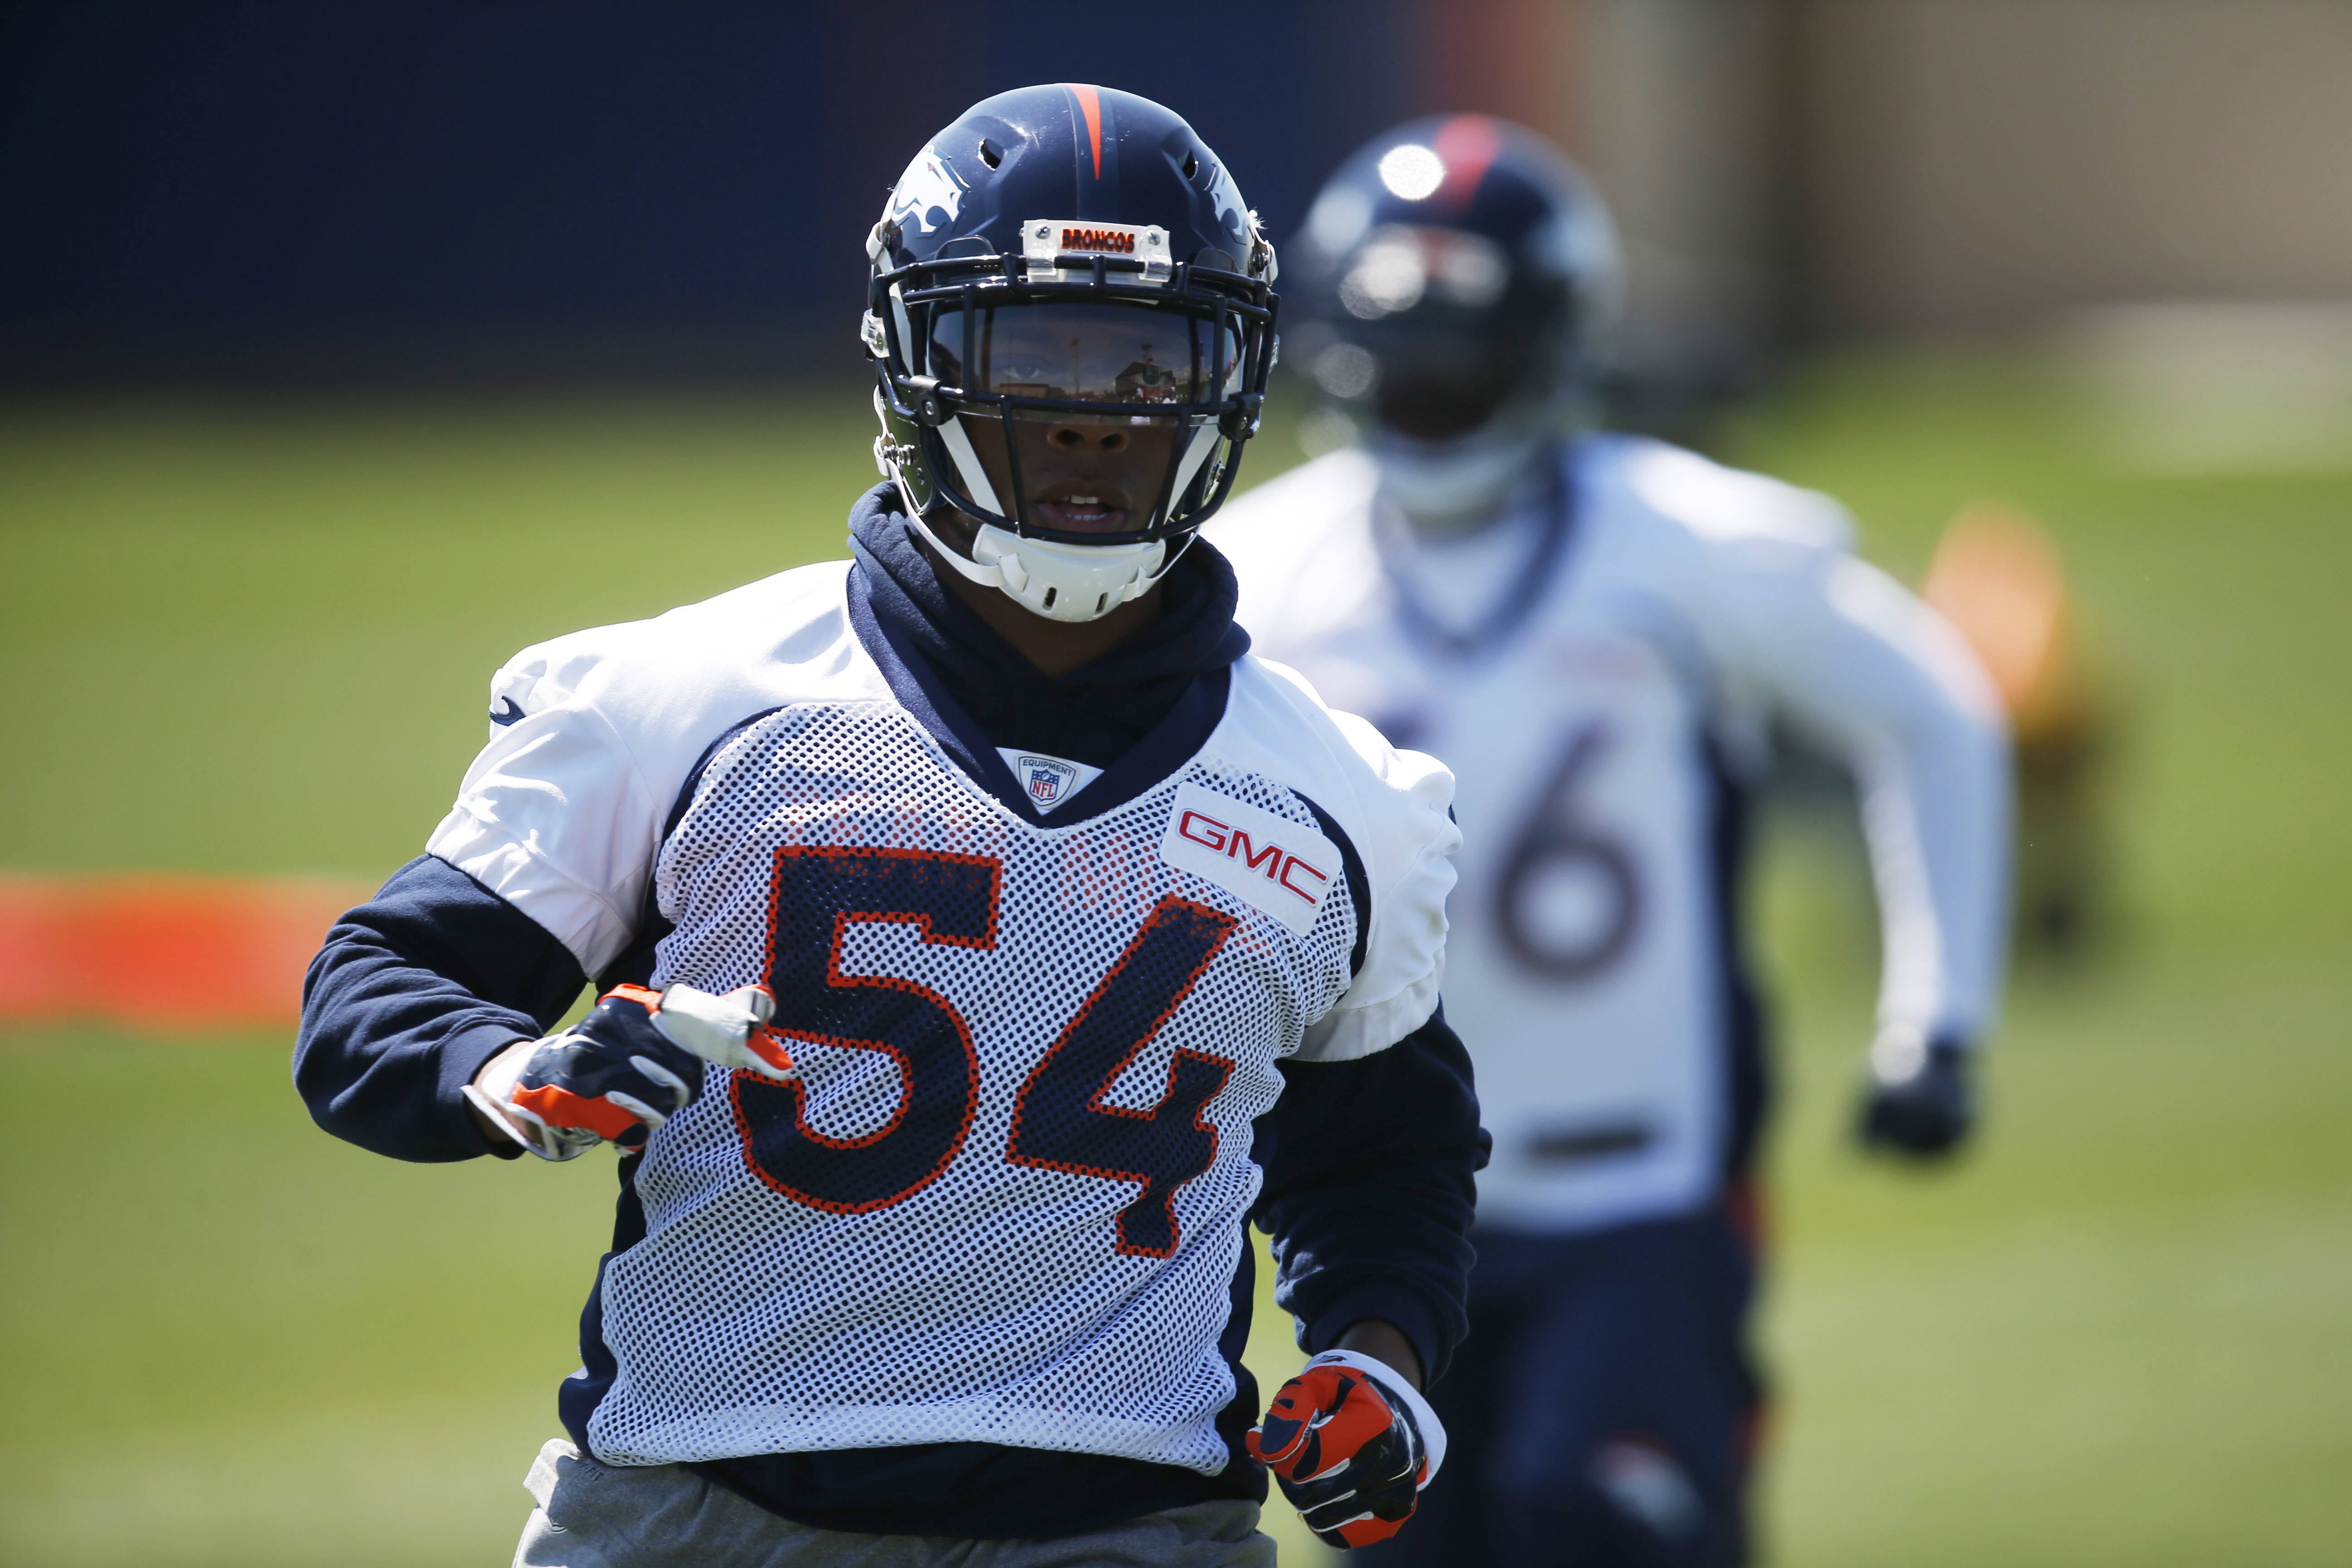 Denver Broncos inside linebacker Brandon Marshall takes part in a drill during an NFL football practice at the team's headquarters Wednesday, June 8, 2016, in Englewood, Colo. (AP Photo/David Zalubowski)